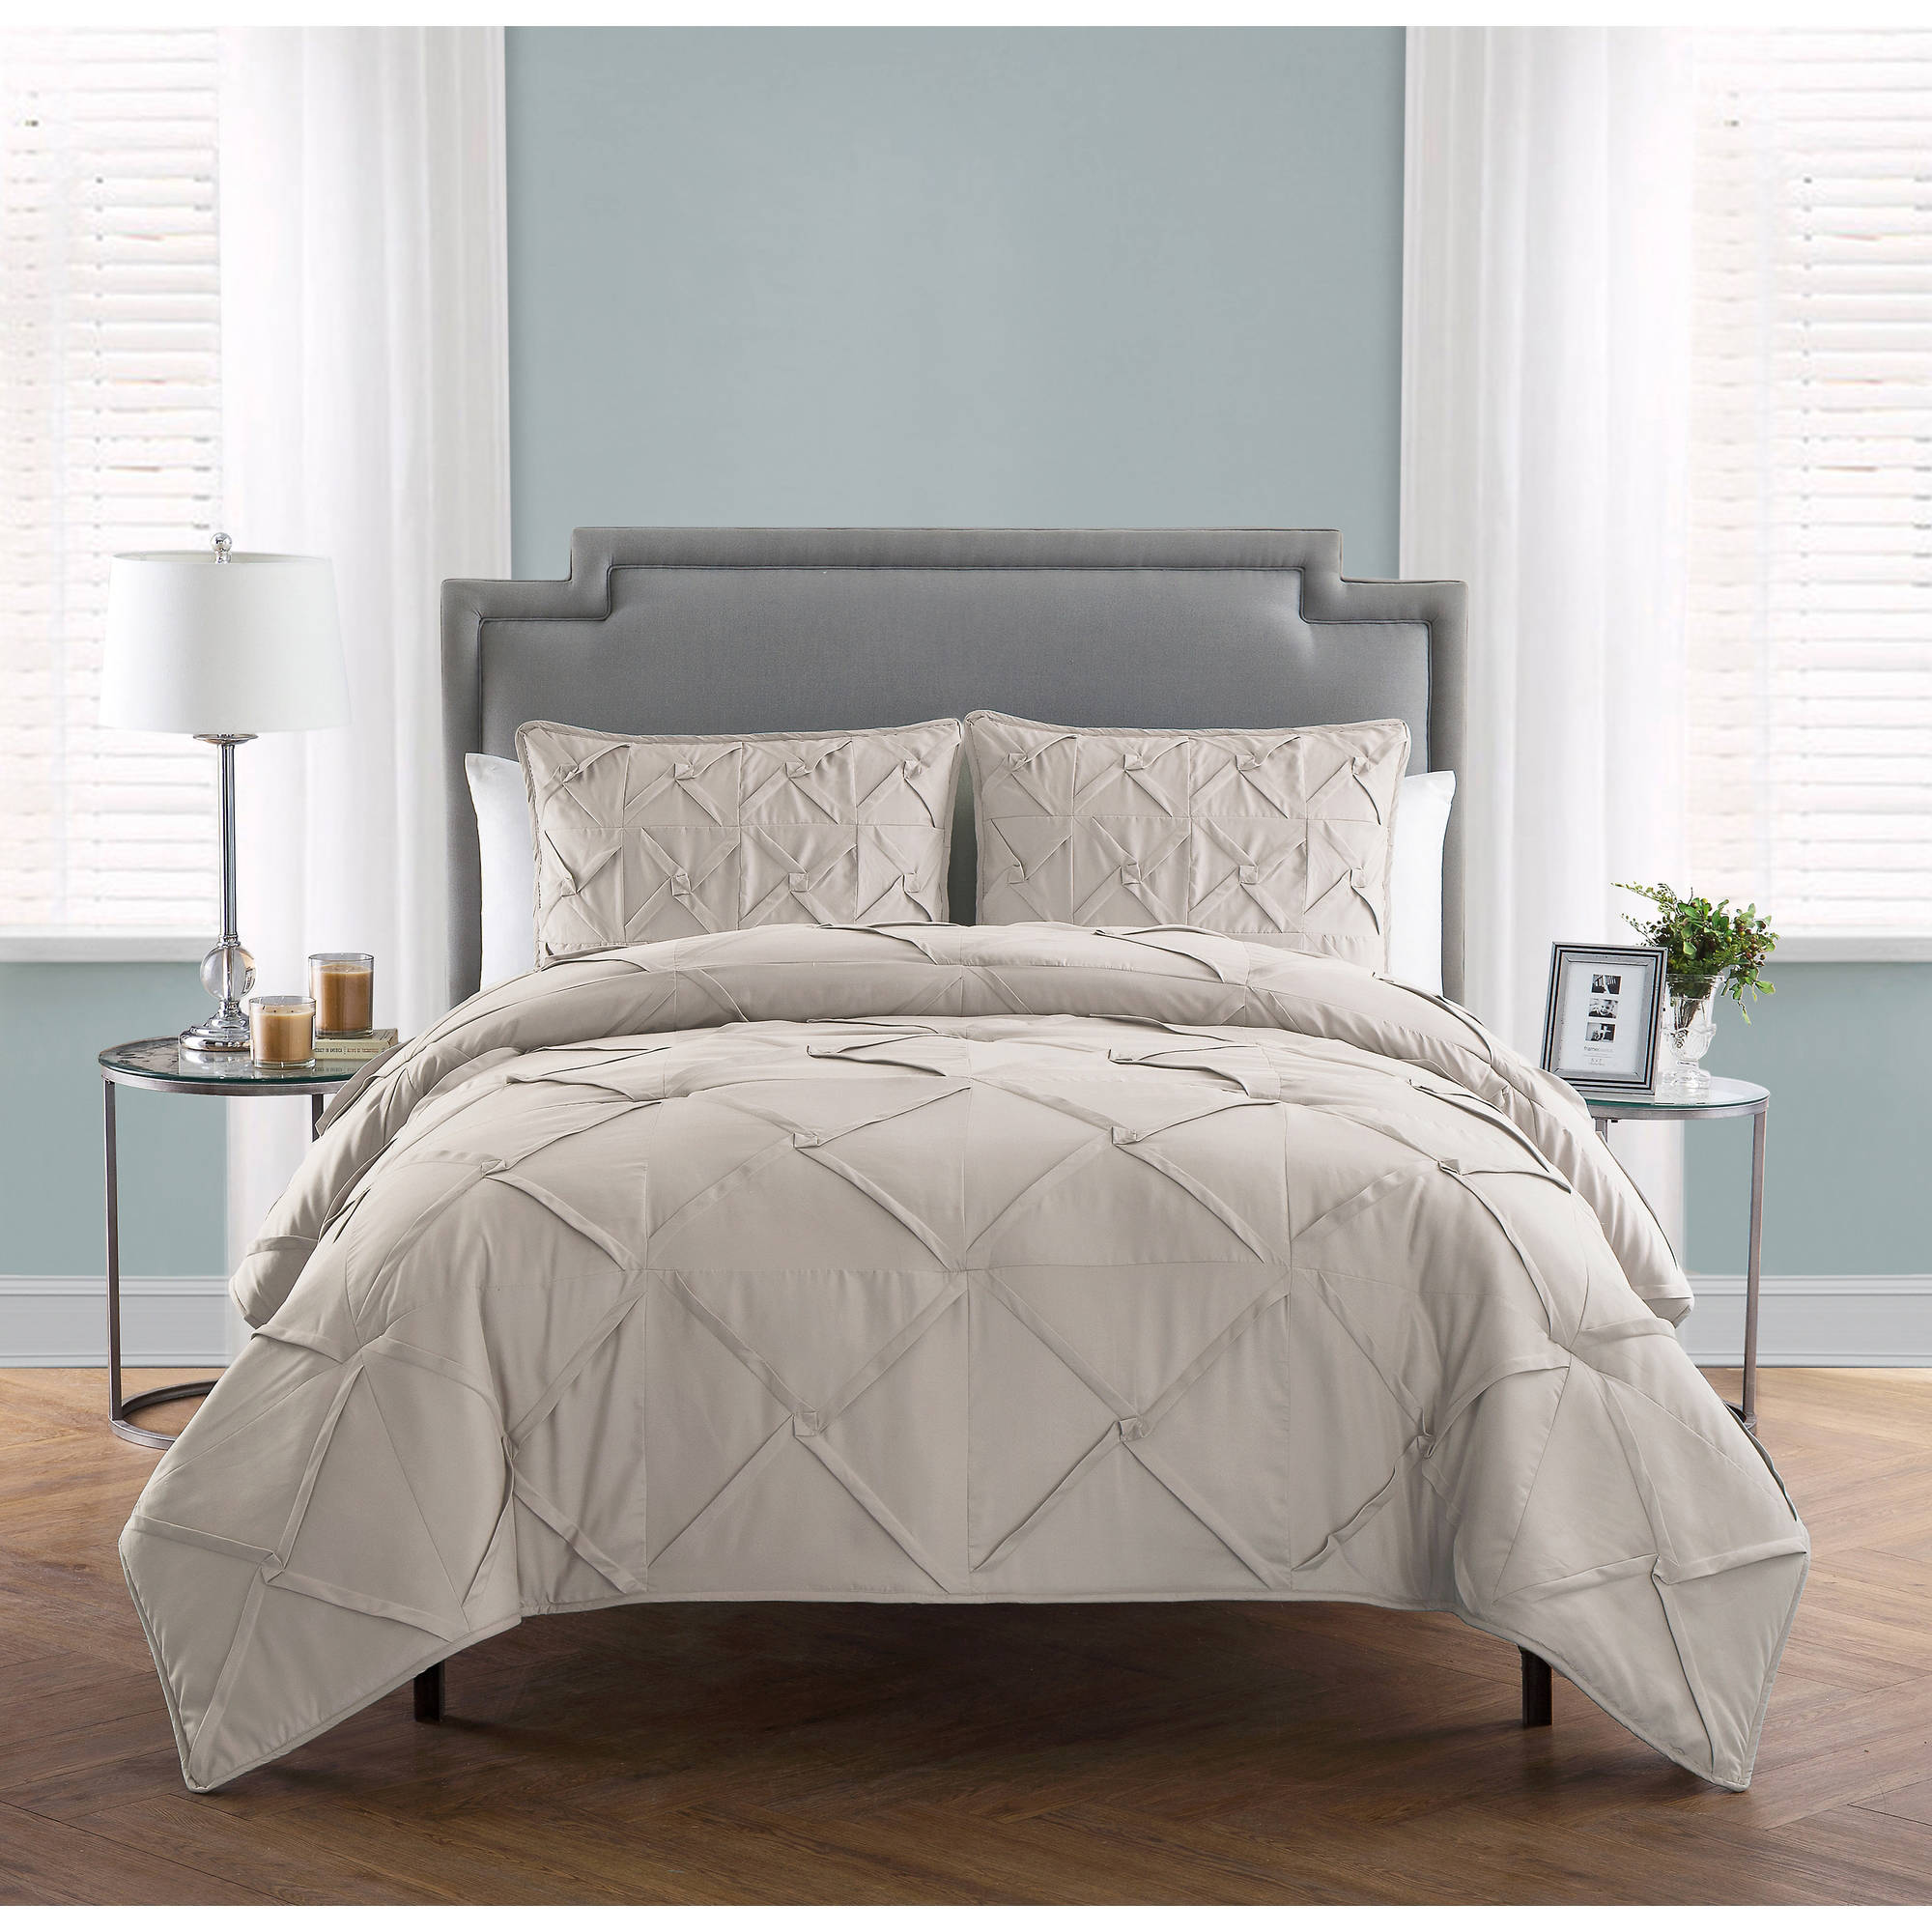 VCNY Home Solid Textured 3-Piece Julie Bedding Comforter Set, Multiple Colors and Sizes Available